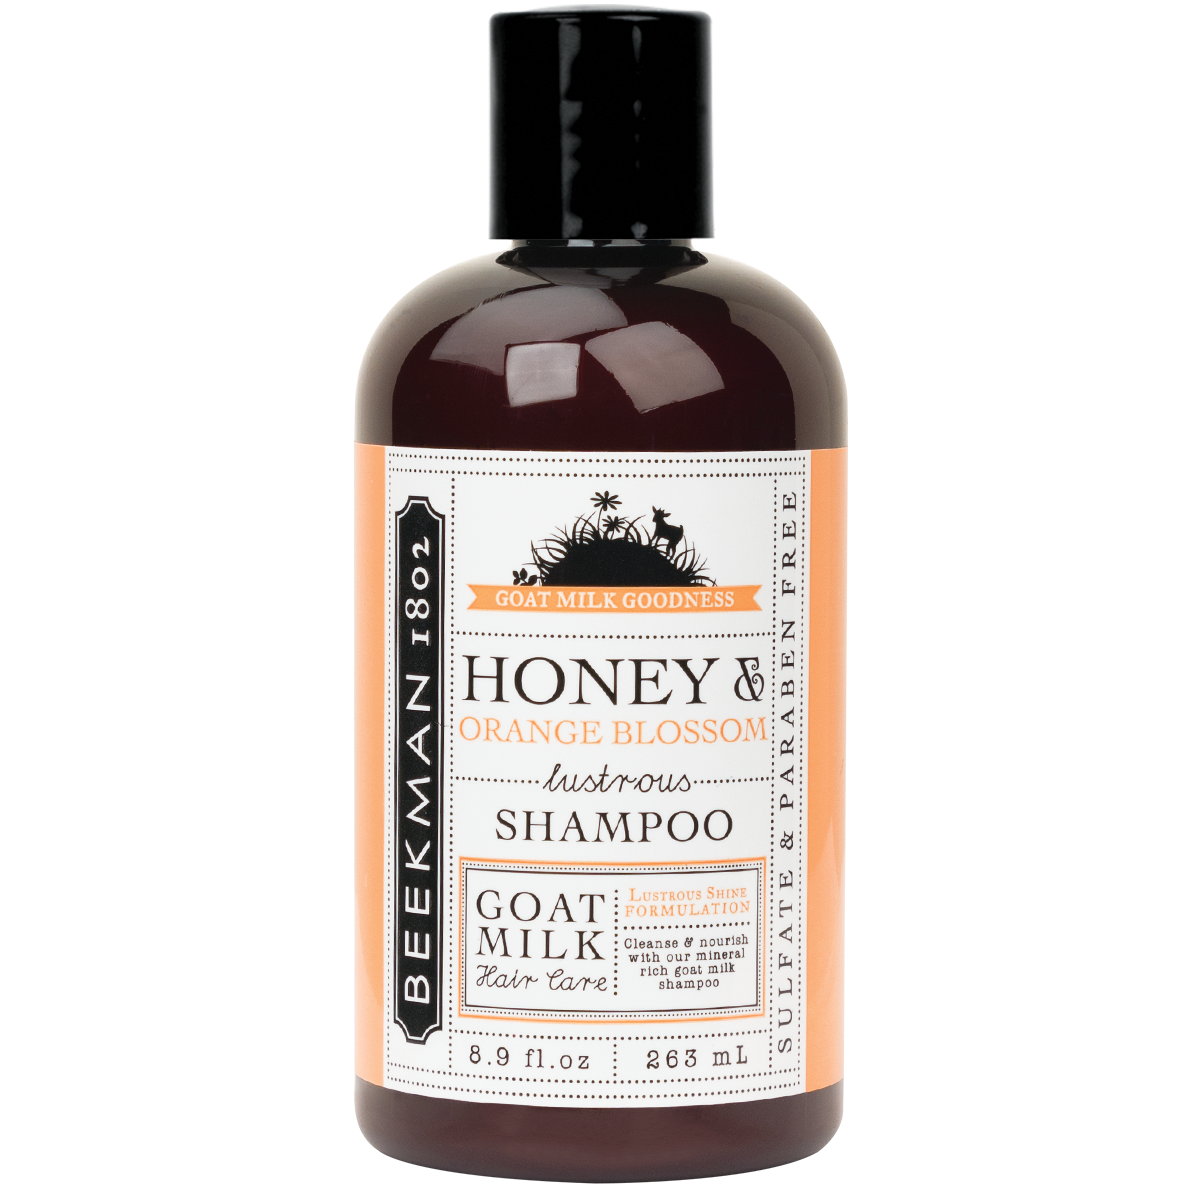 Honey & Orange Blossom Shampoo